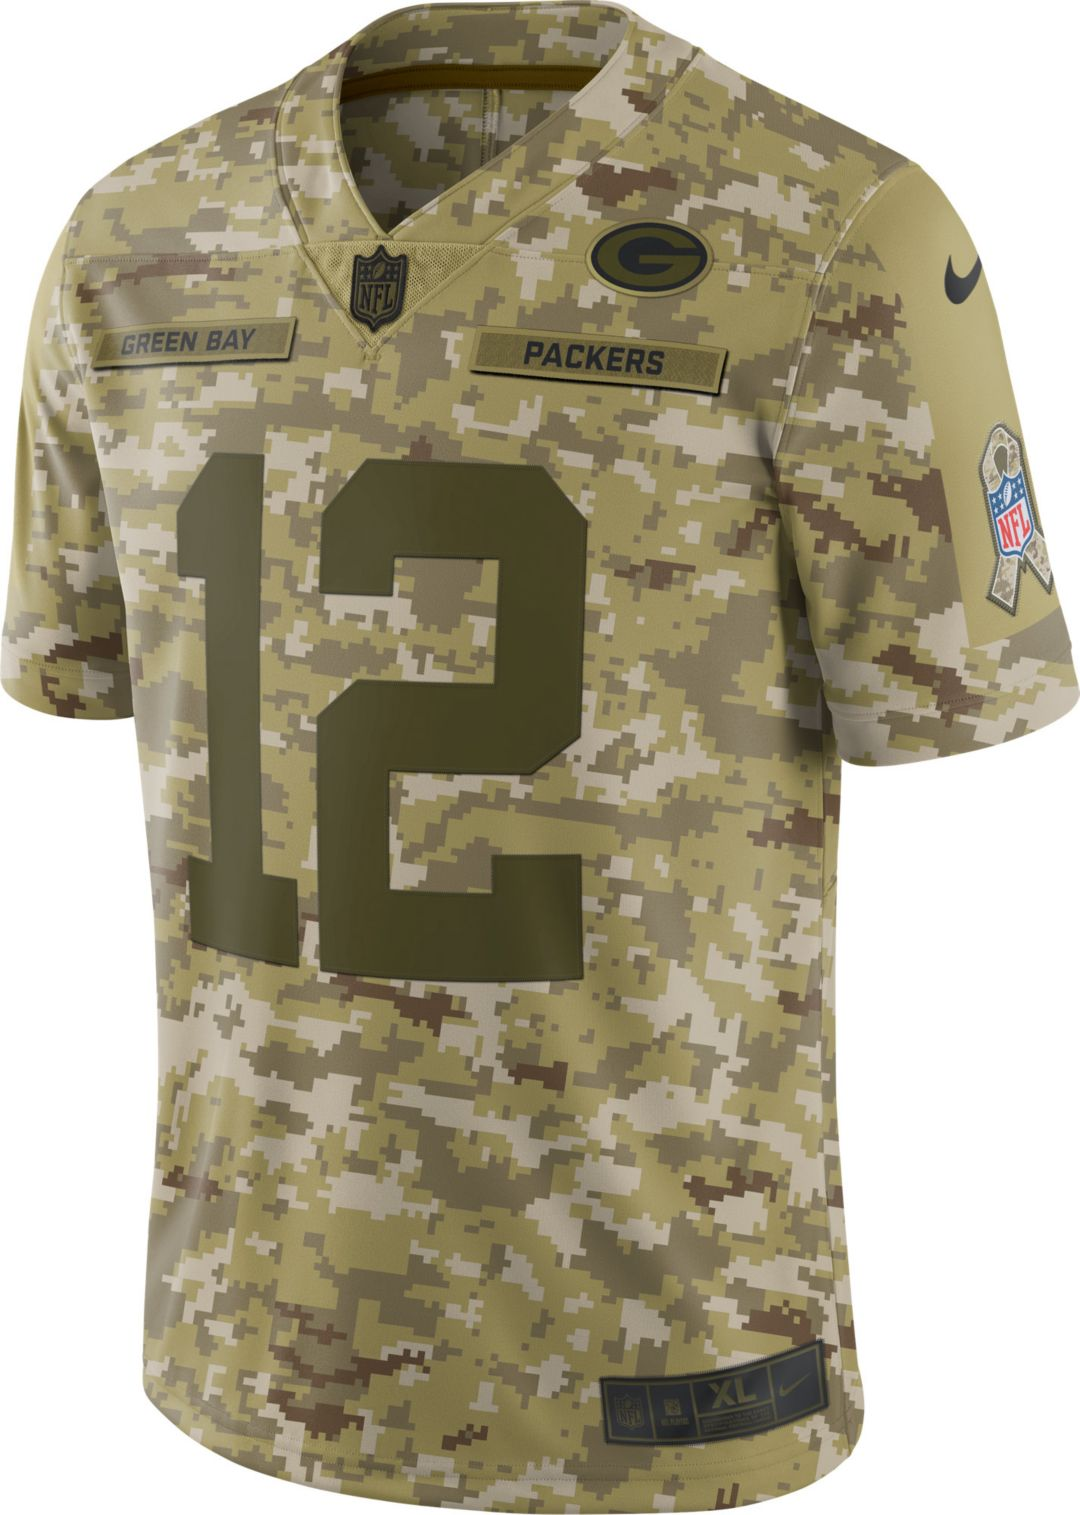 cd2b86e8c Nike Men's Salute to Service Green Bay Packers Aaron Rodgers #12 Limited  Camouflage Jersey 2